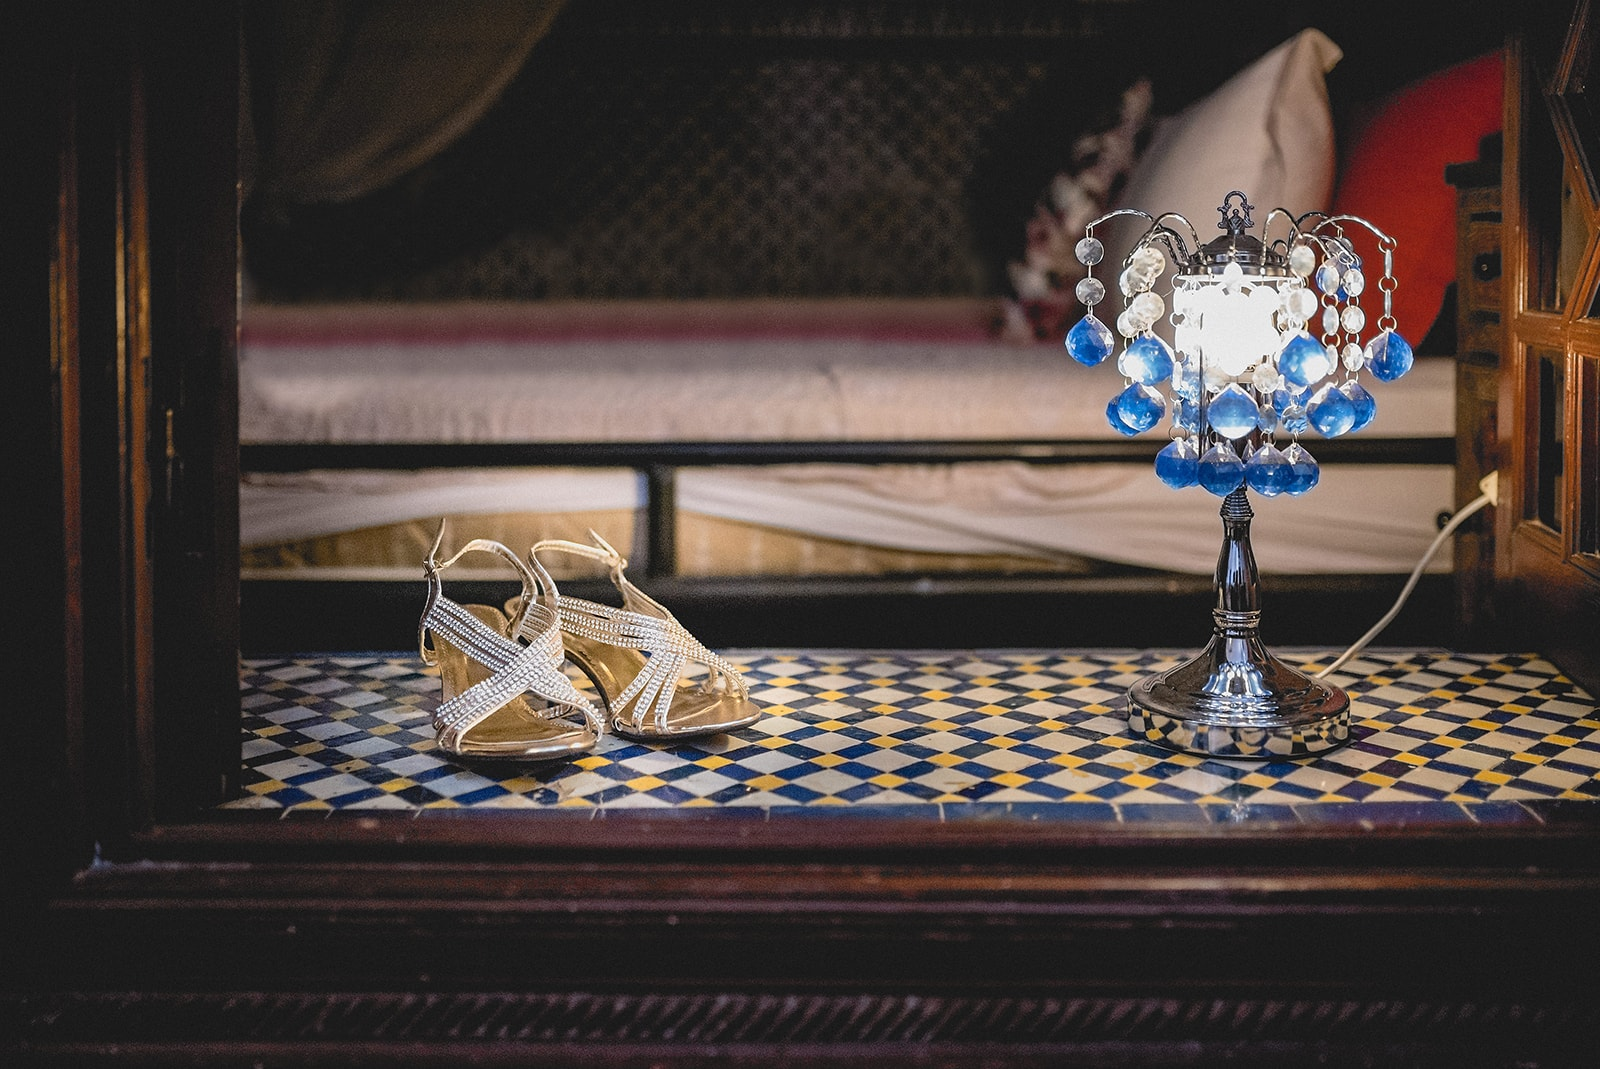 Bride's shoes resting on Moroccan tiles in the window of her bridal suite